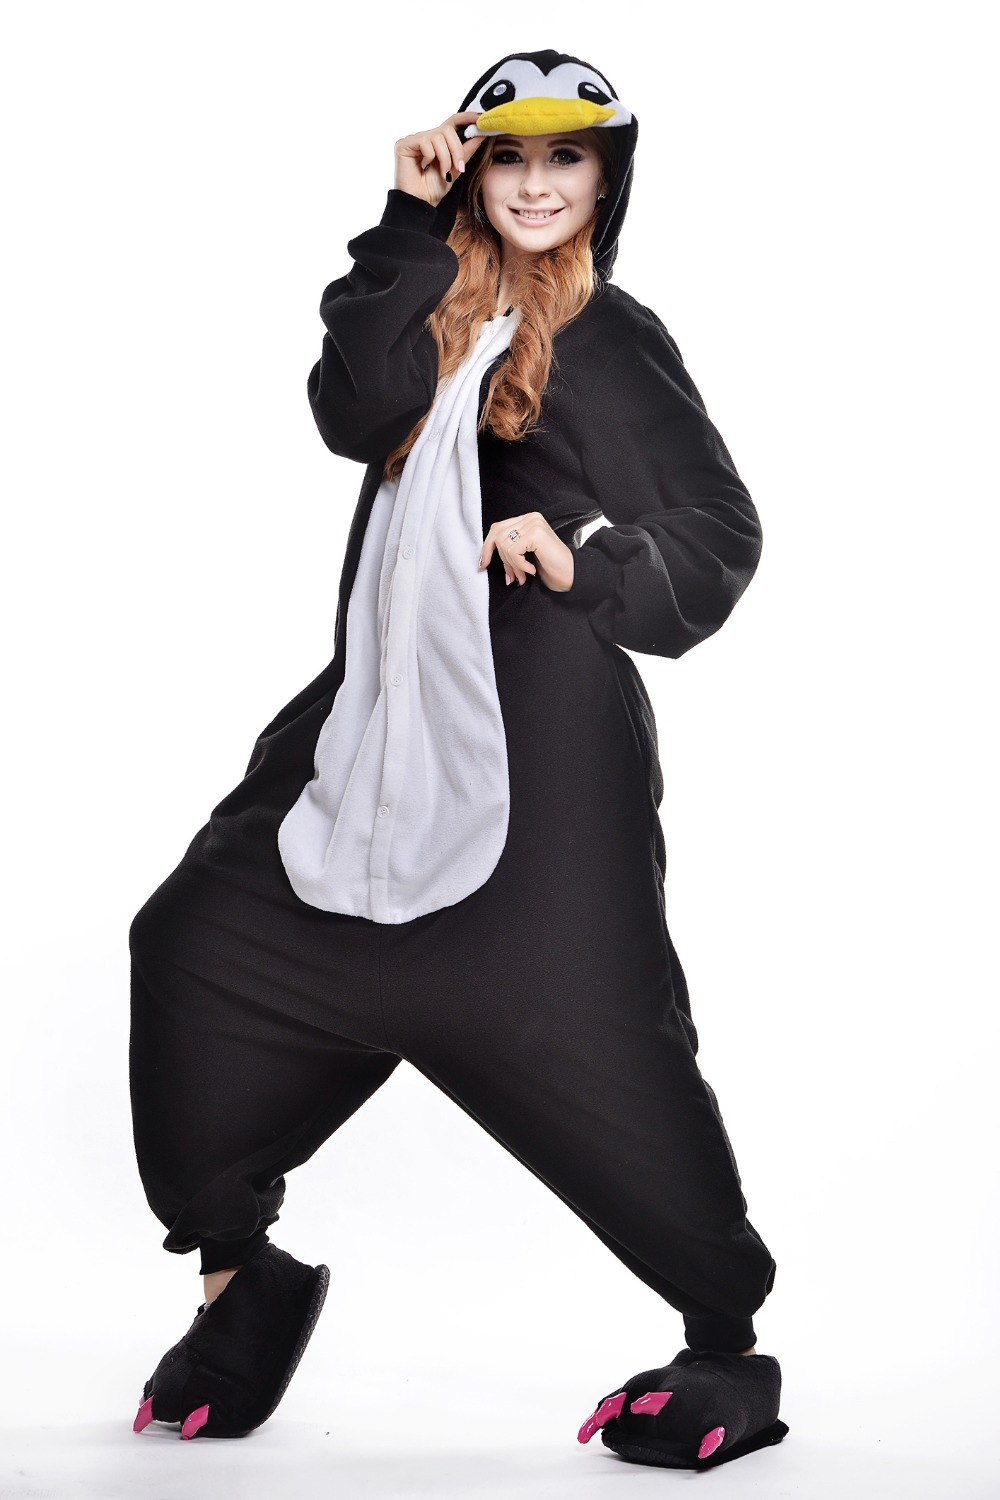 Plus Size Onesies and Plus Size Animal Onesies Plus Size Onesies It's difficult enough finding plus size clothes at the best of times but if you've tried finding more specialist items like plus sized onesies, especially the animal or kigurumi style costume onesies, you'll probably be banging your head against the keyboard right about now.